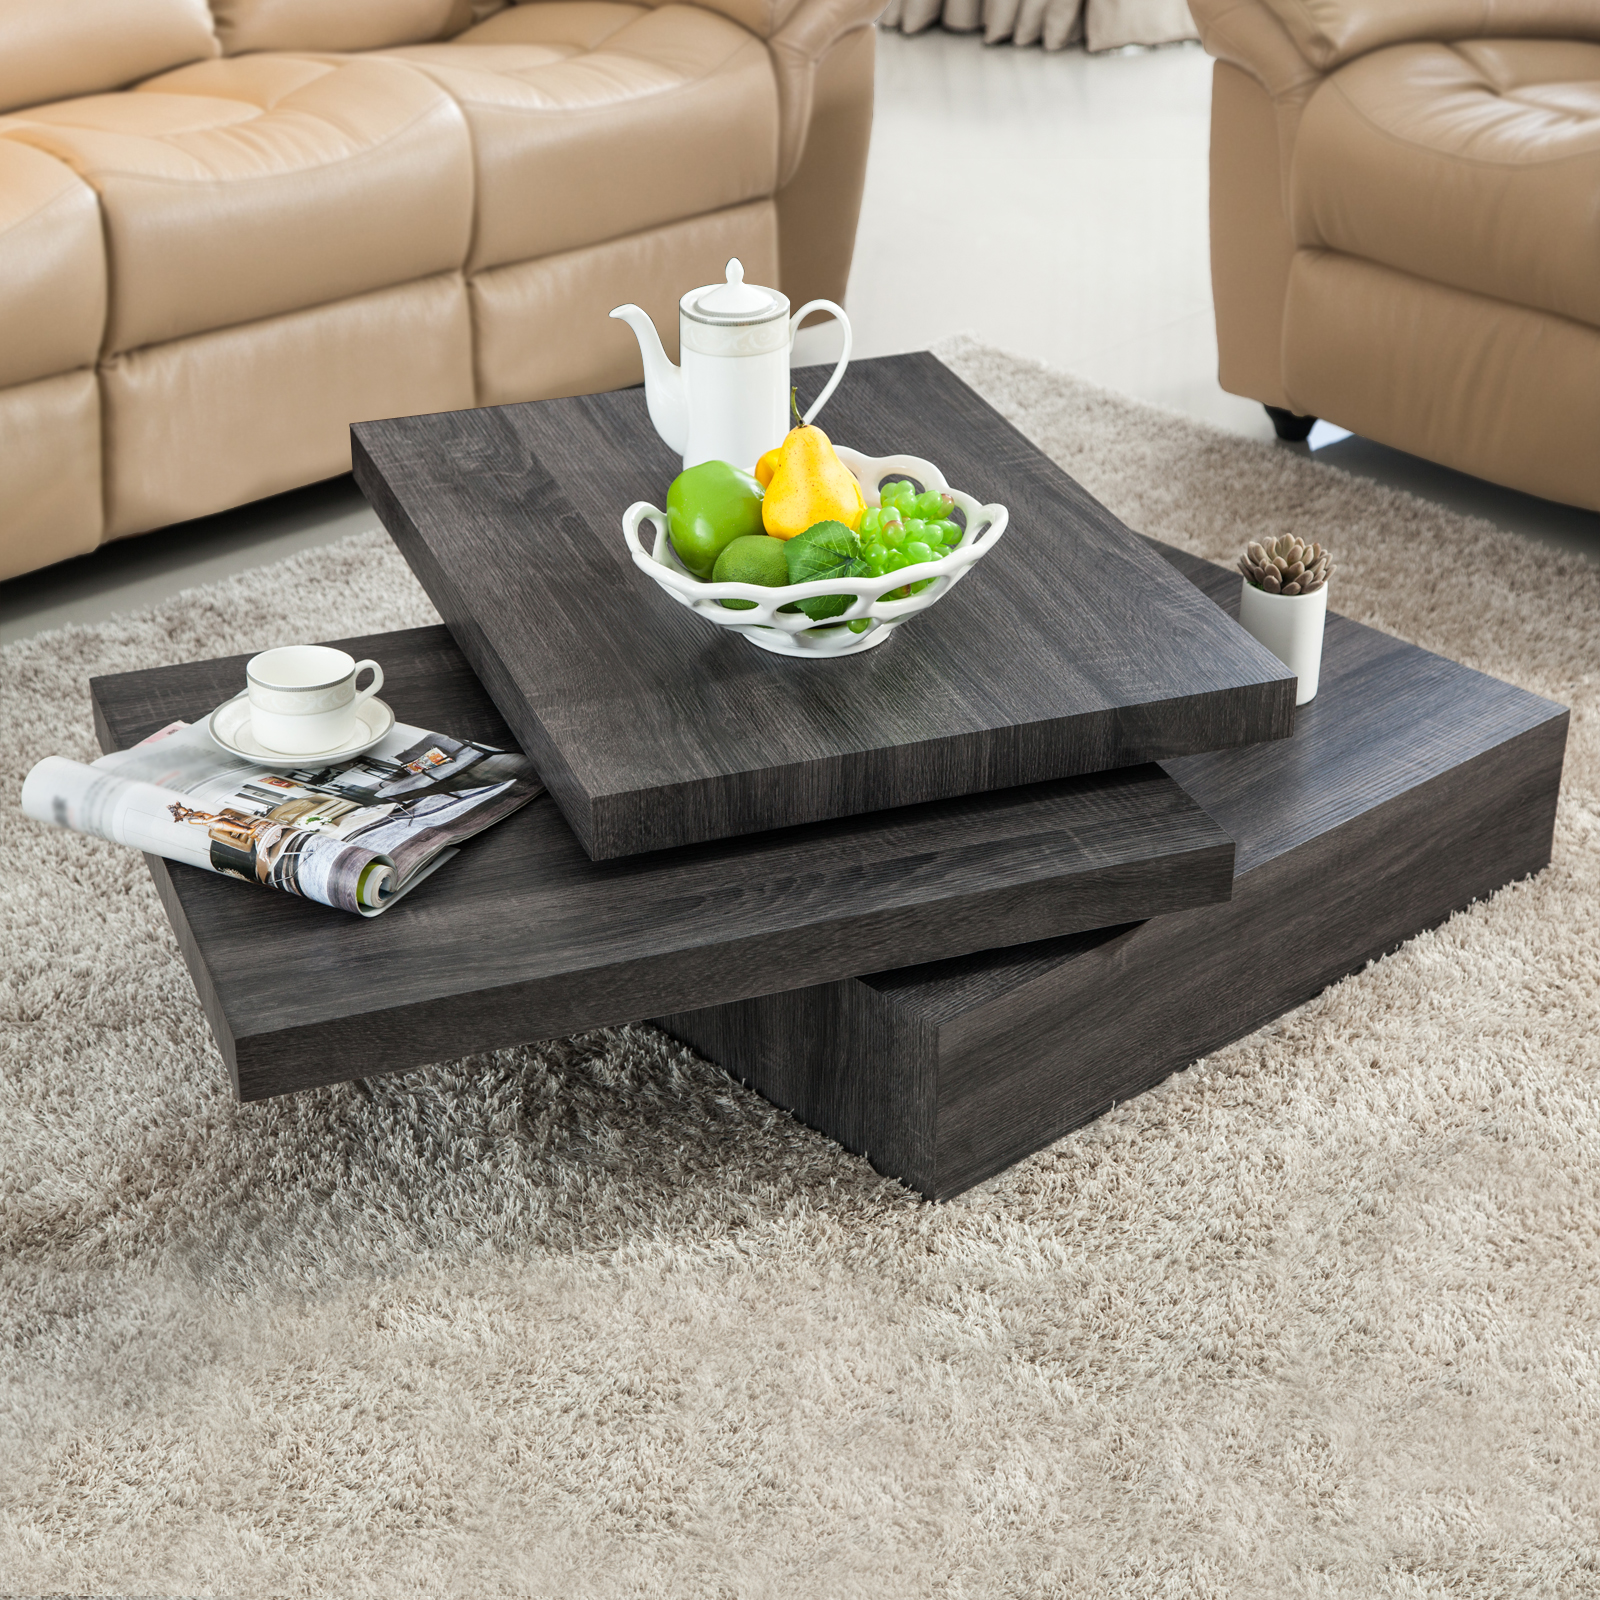 Oval Rotating Coffee Table: Oak Square Rotating Wood Coffee Table With 3 Layers Home